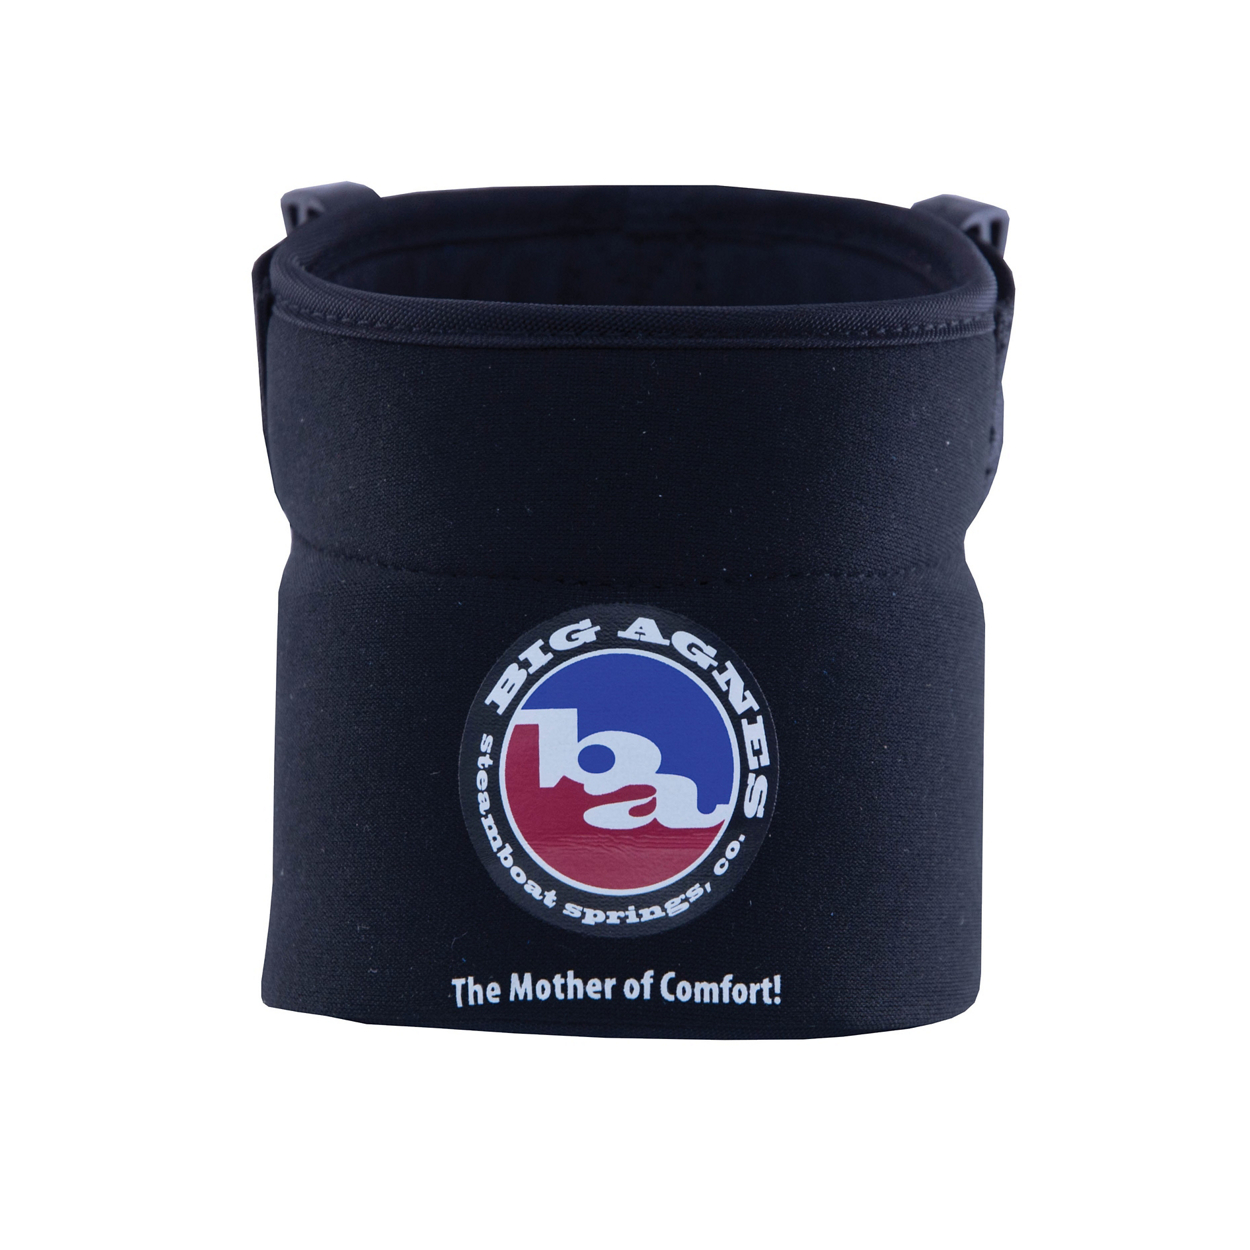 Image of Cup Holder